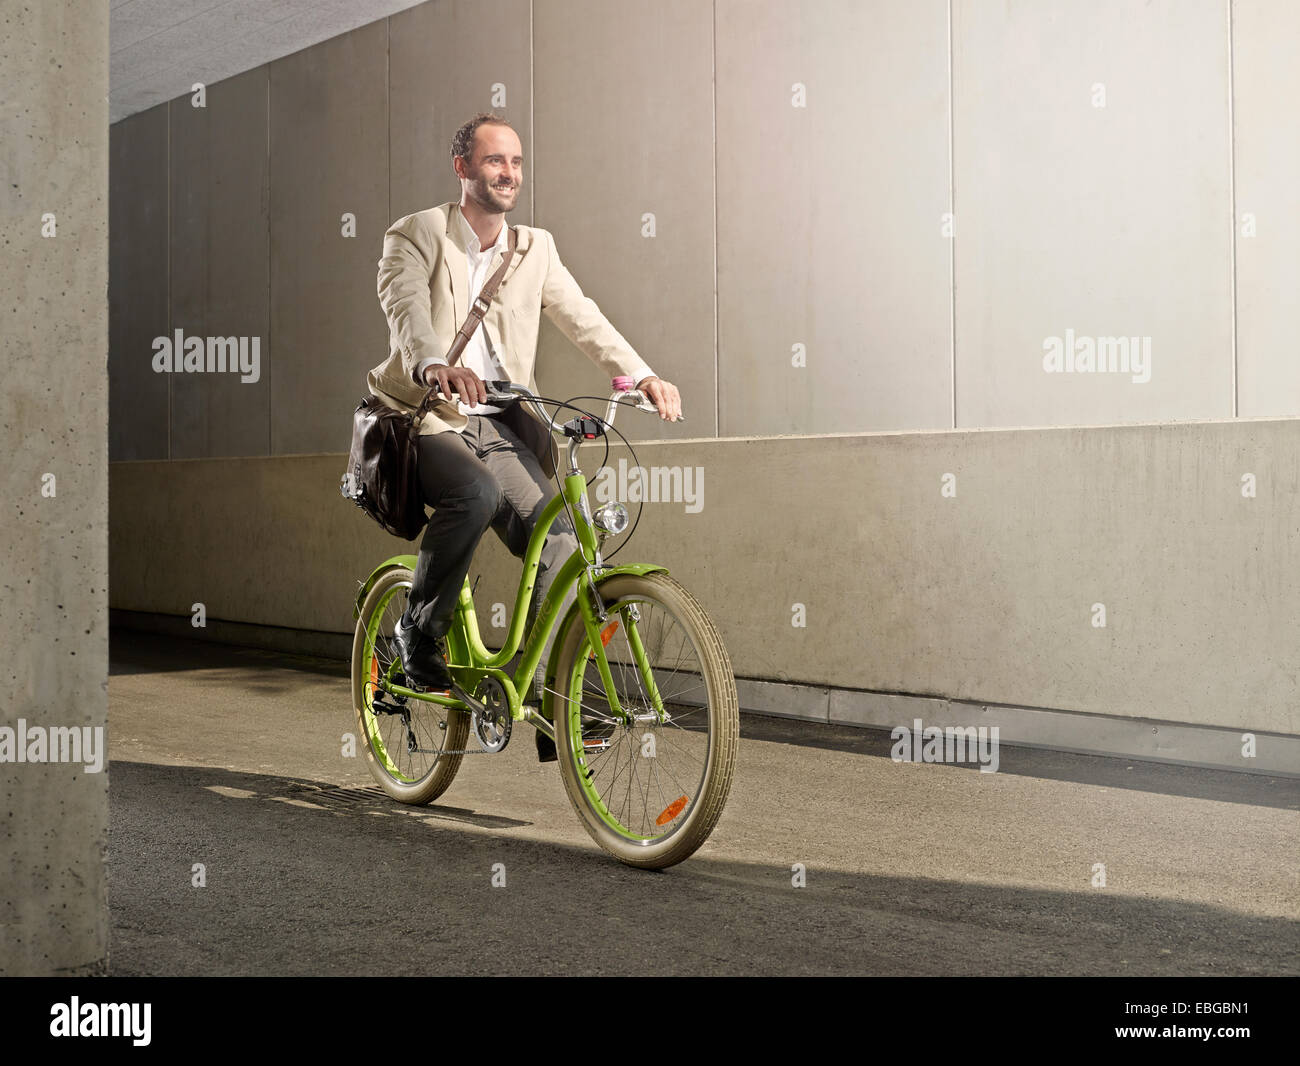 Man carrying a bag over his shoulder while riding a bicycle in the city, Innsbruck, Tyrol, Austria - Stock Image